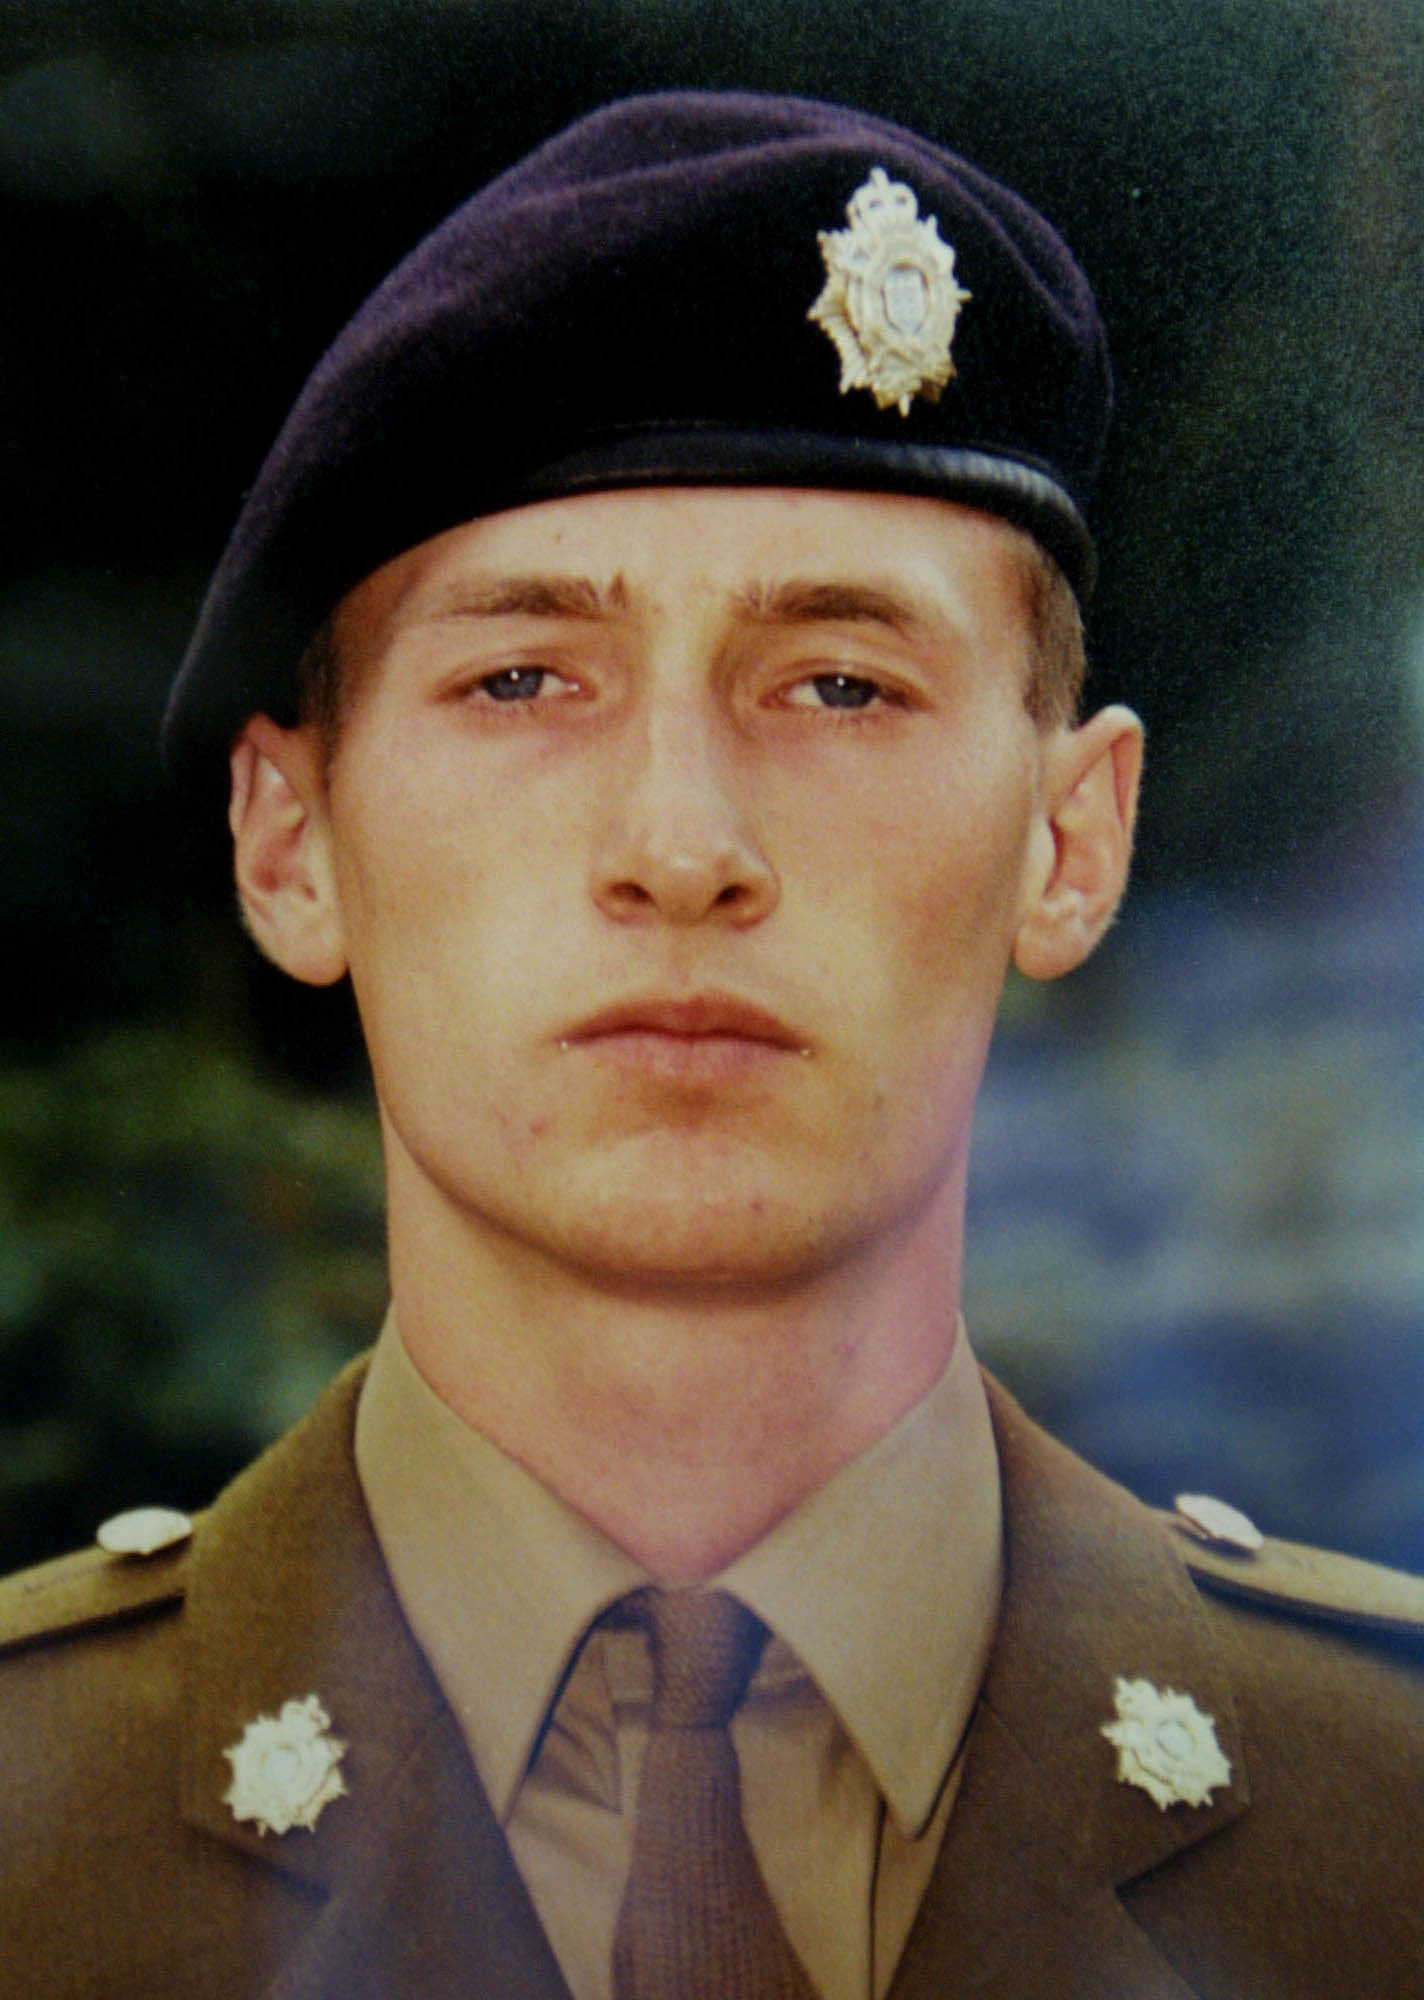 Private Sean Benton died in 1995